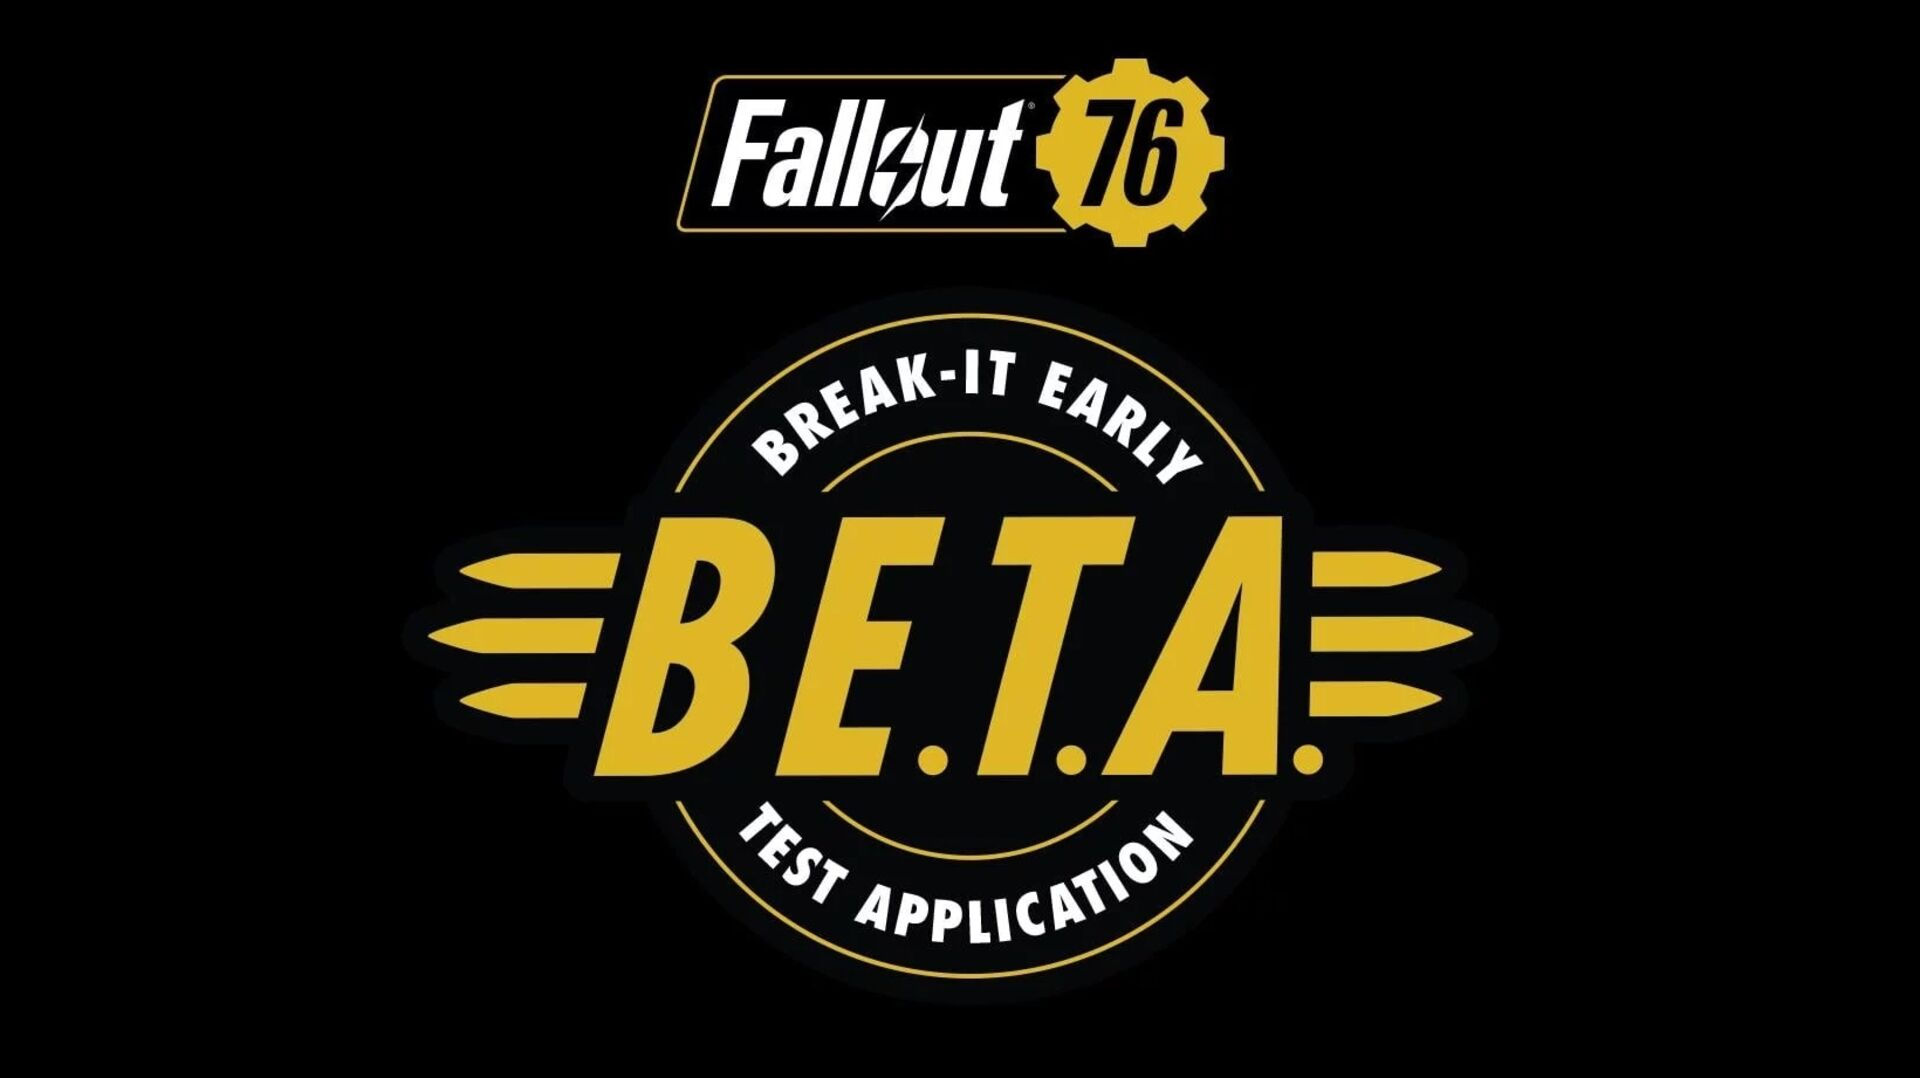 Fallout 76 may have some